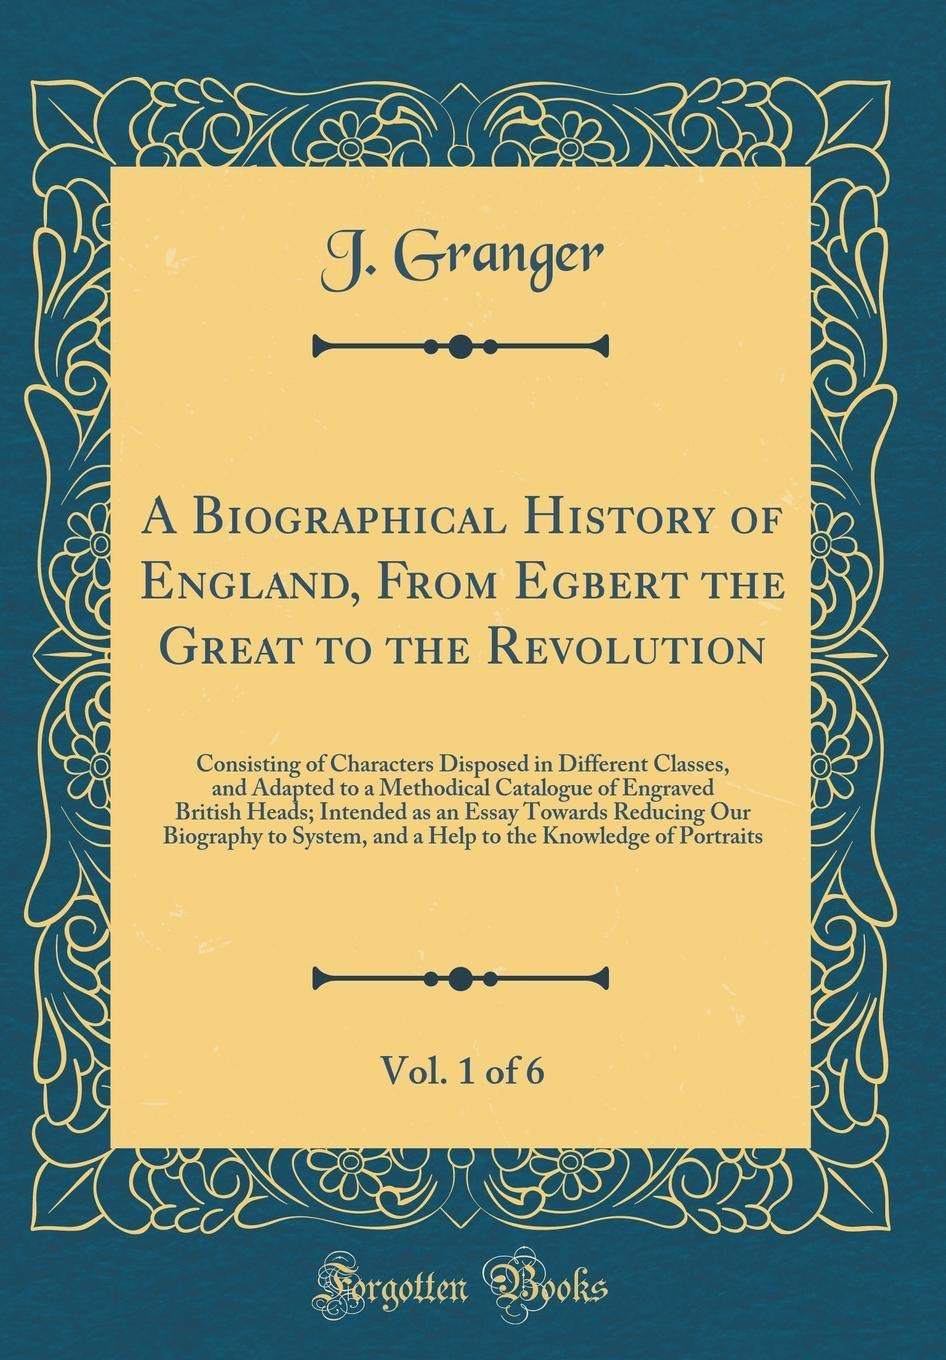 A Biographical History of England, from Egbert the Great to the Revolution, Vol. 1 of 6: Consisting of Characters Disposed in Different Classes, and ... Intended as an Essay Towards Reducing Our Bio PDF